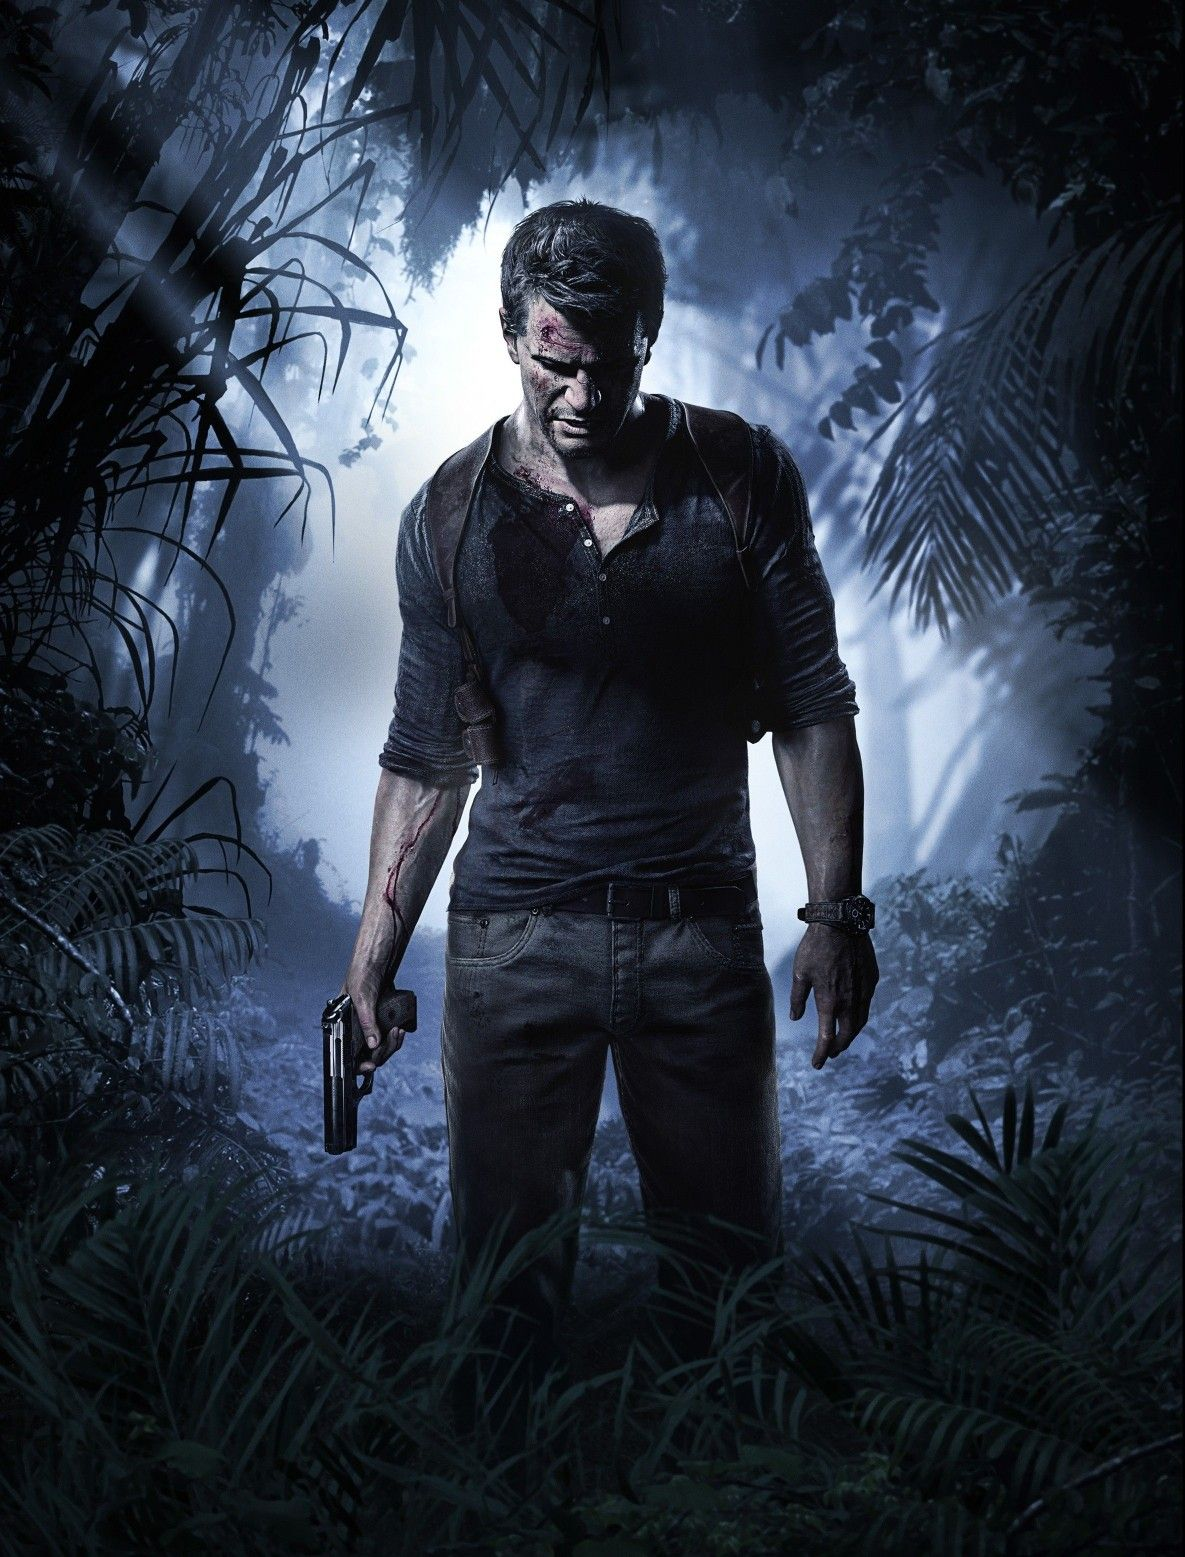 Uncharted 4 In 2020 Uncharted Artwork Uncharted Game Uncharted Drake